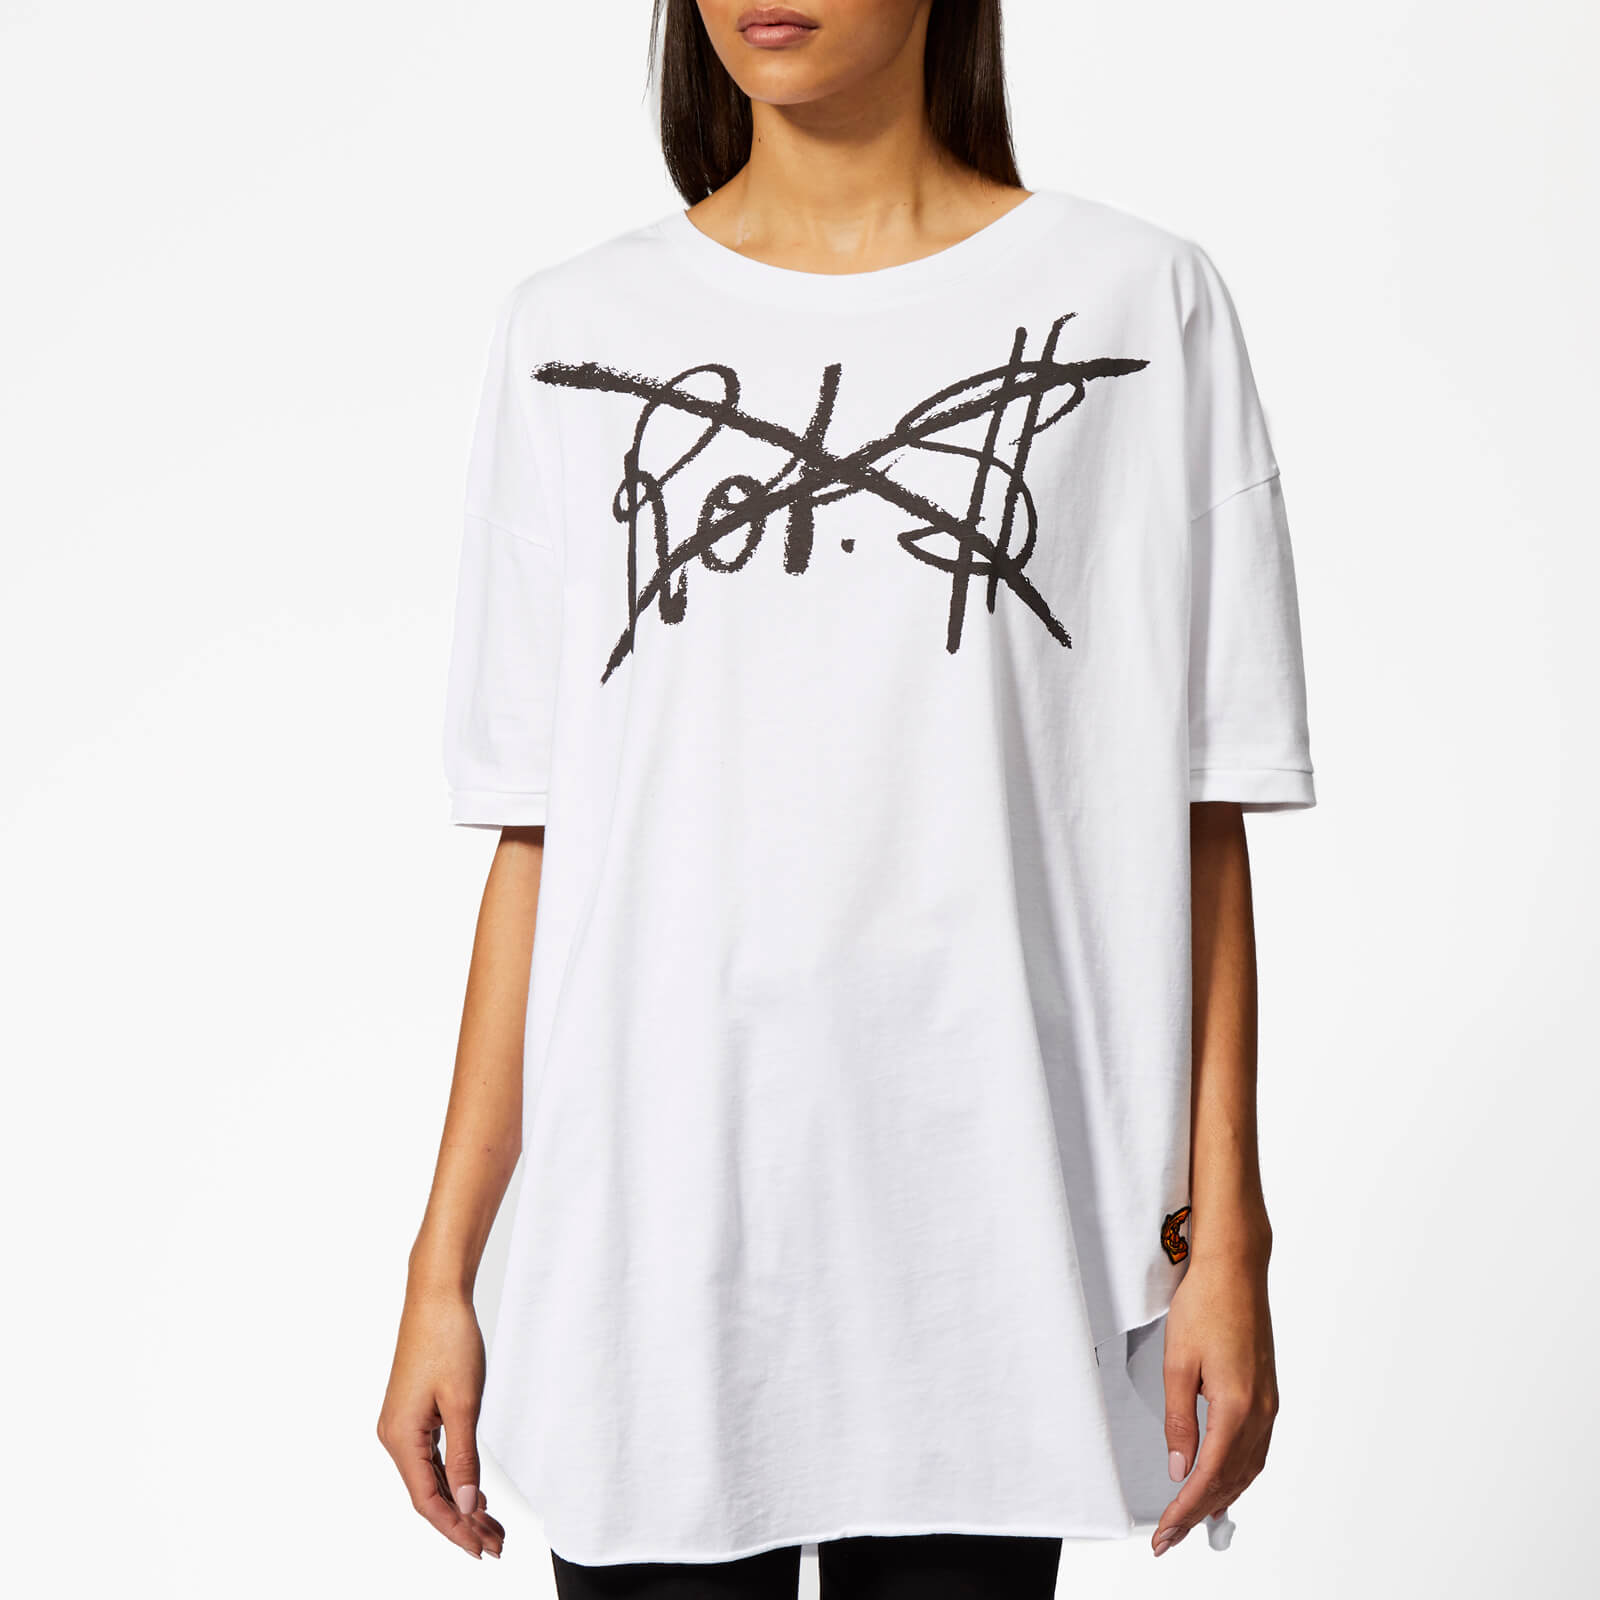 5590041e Vivienne Westwood Anglomania Women's Baggy T-Shirt - White - Free UK  Delivery over £50